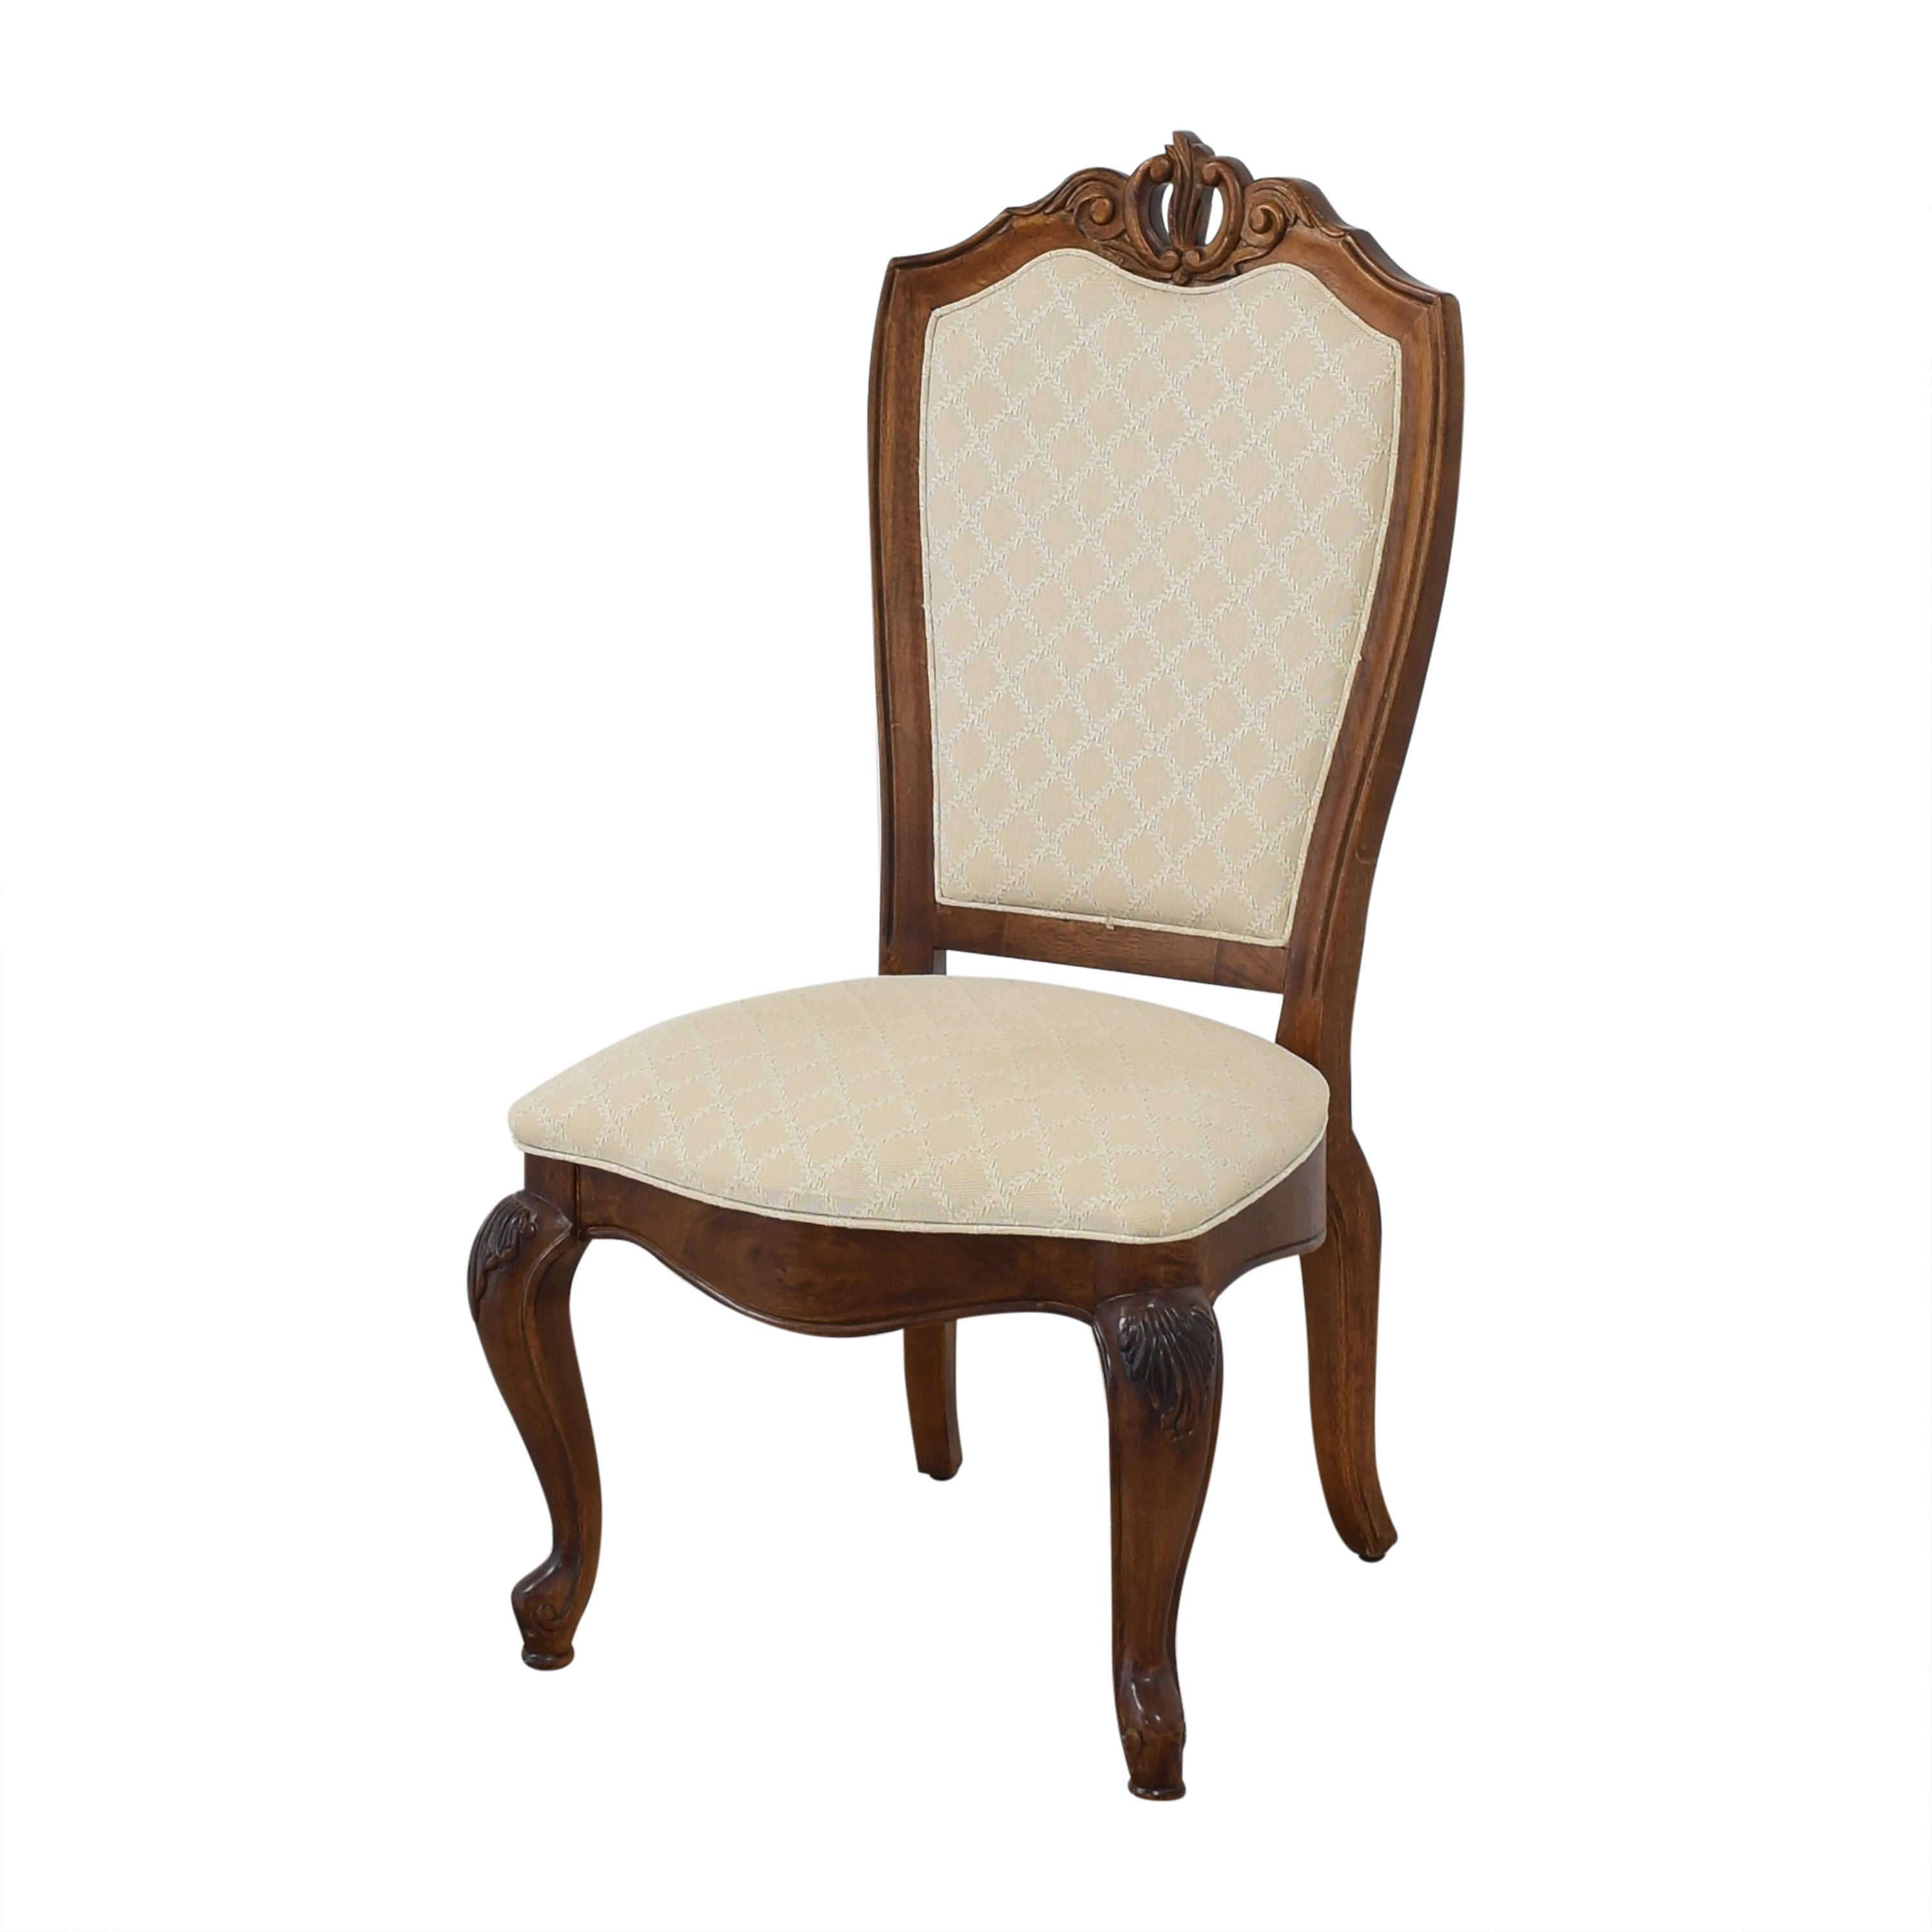 American Drew Bob Mackie for American Drew Dining Chairs pa